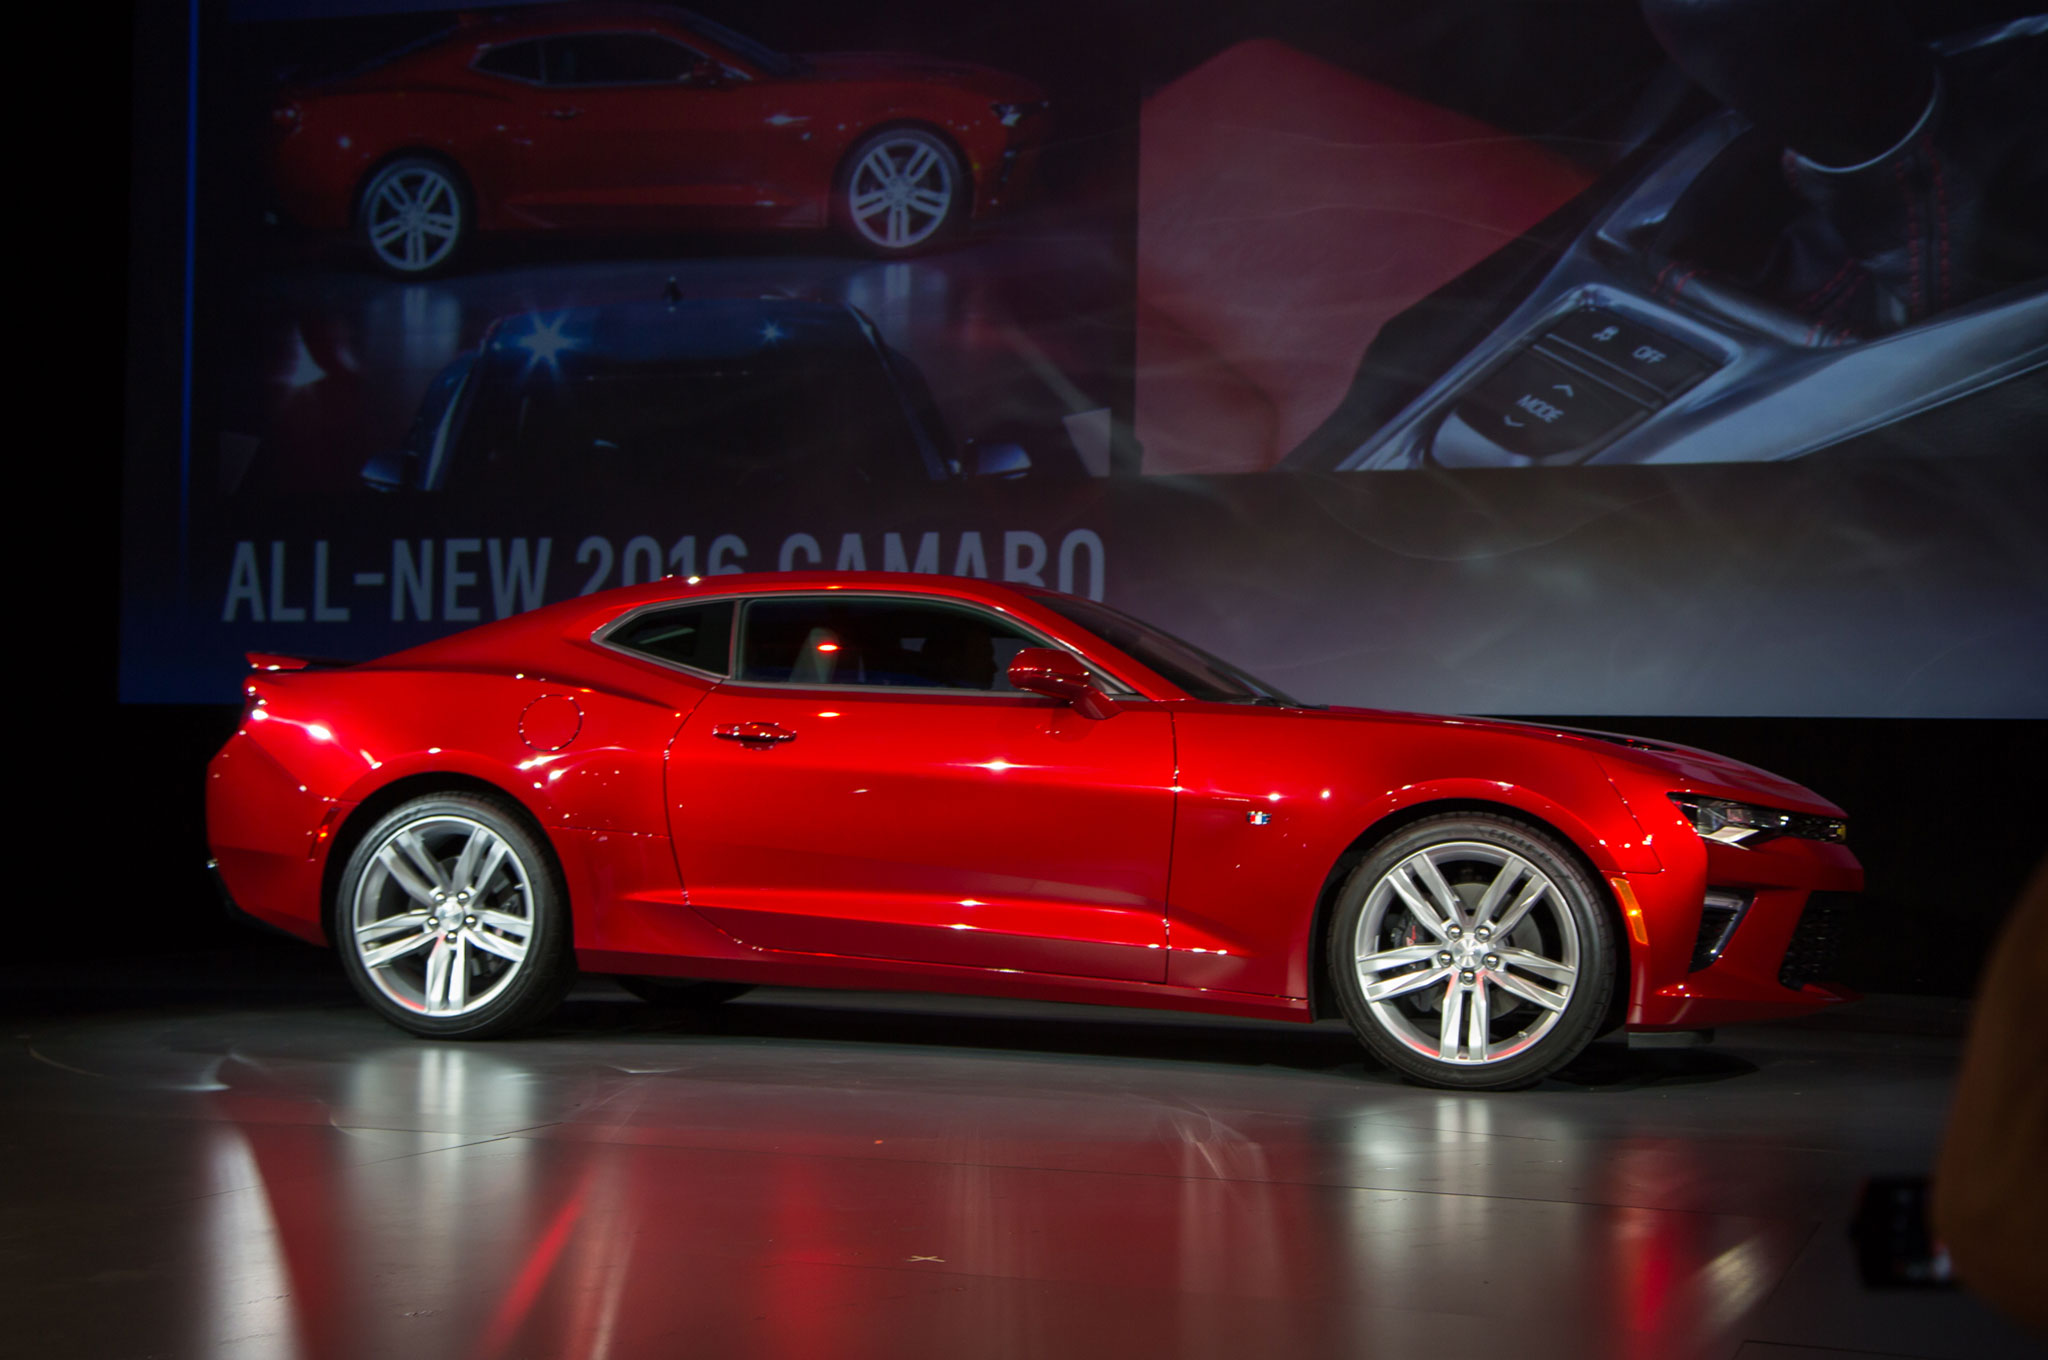 2016 chevrolet camaro 1lt for sale cargurus autos post. Black Bedroom Furniture Sets. Home Design Ideas